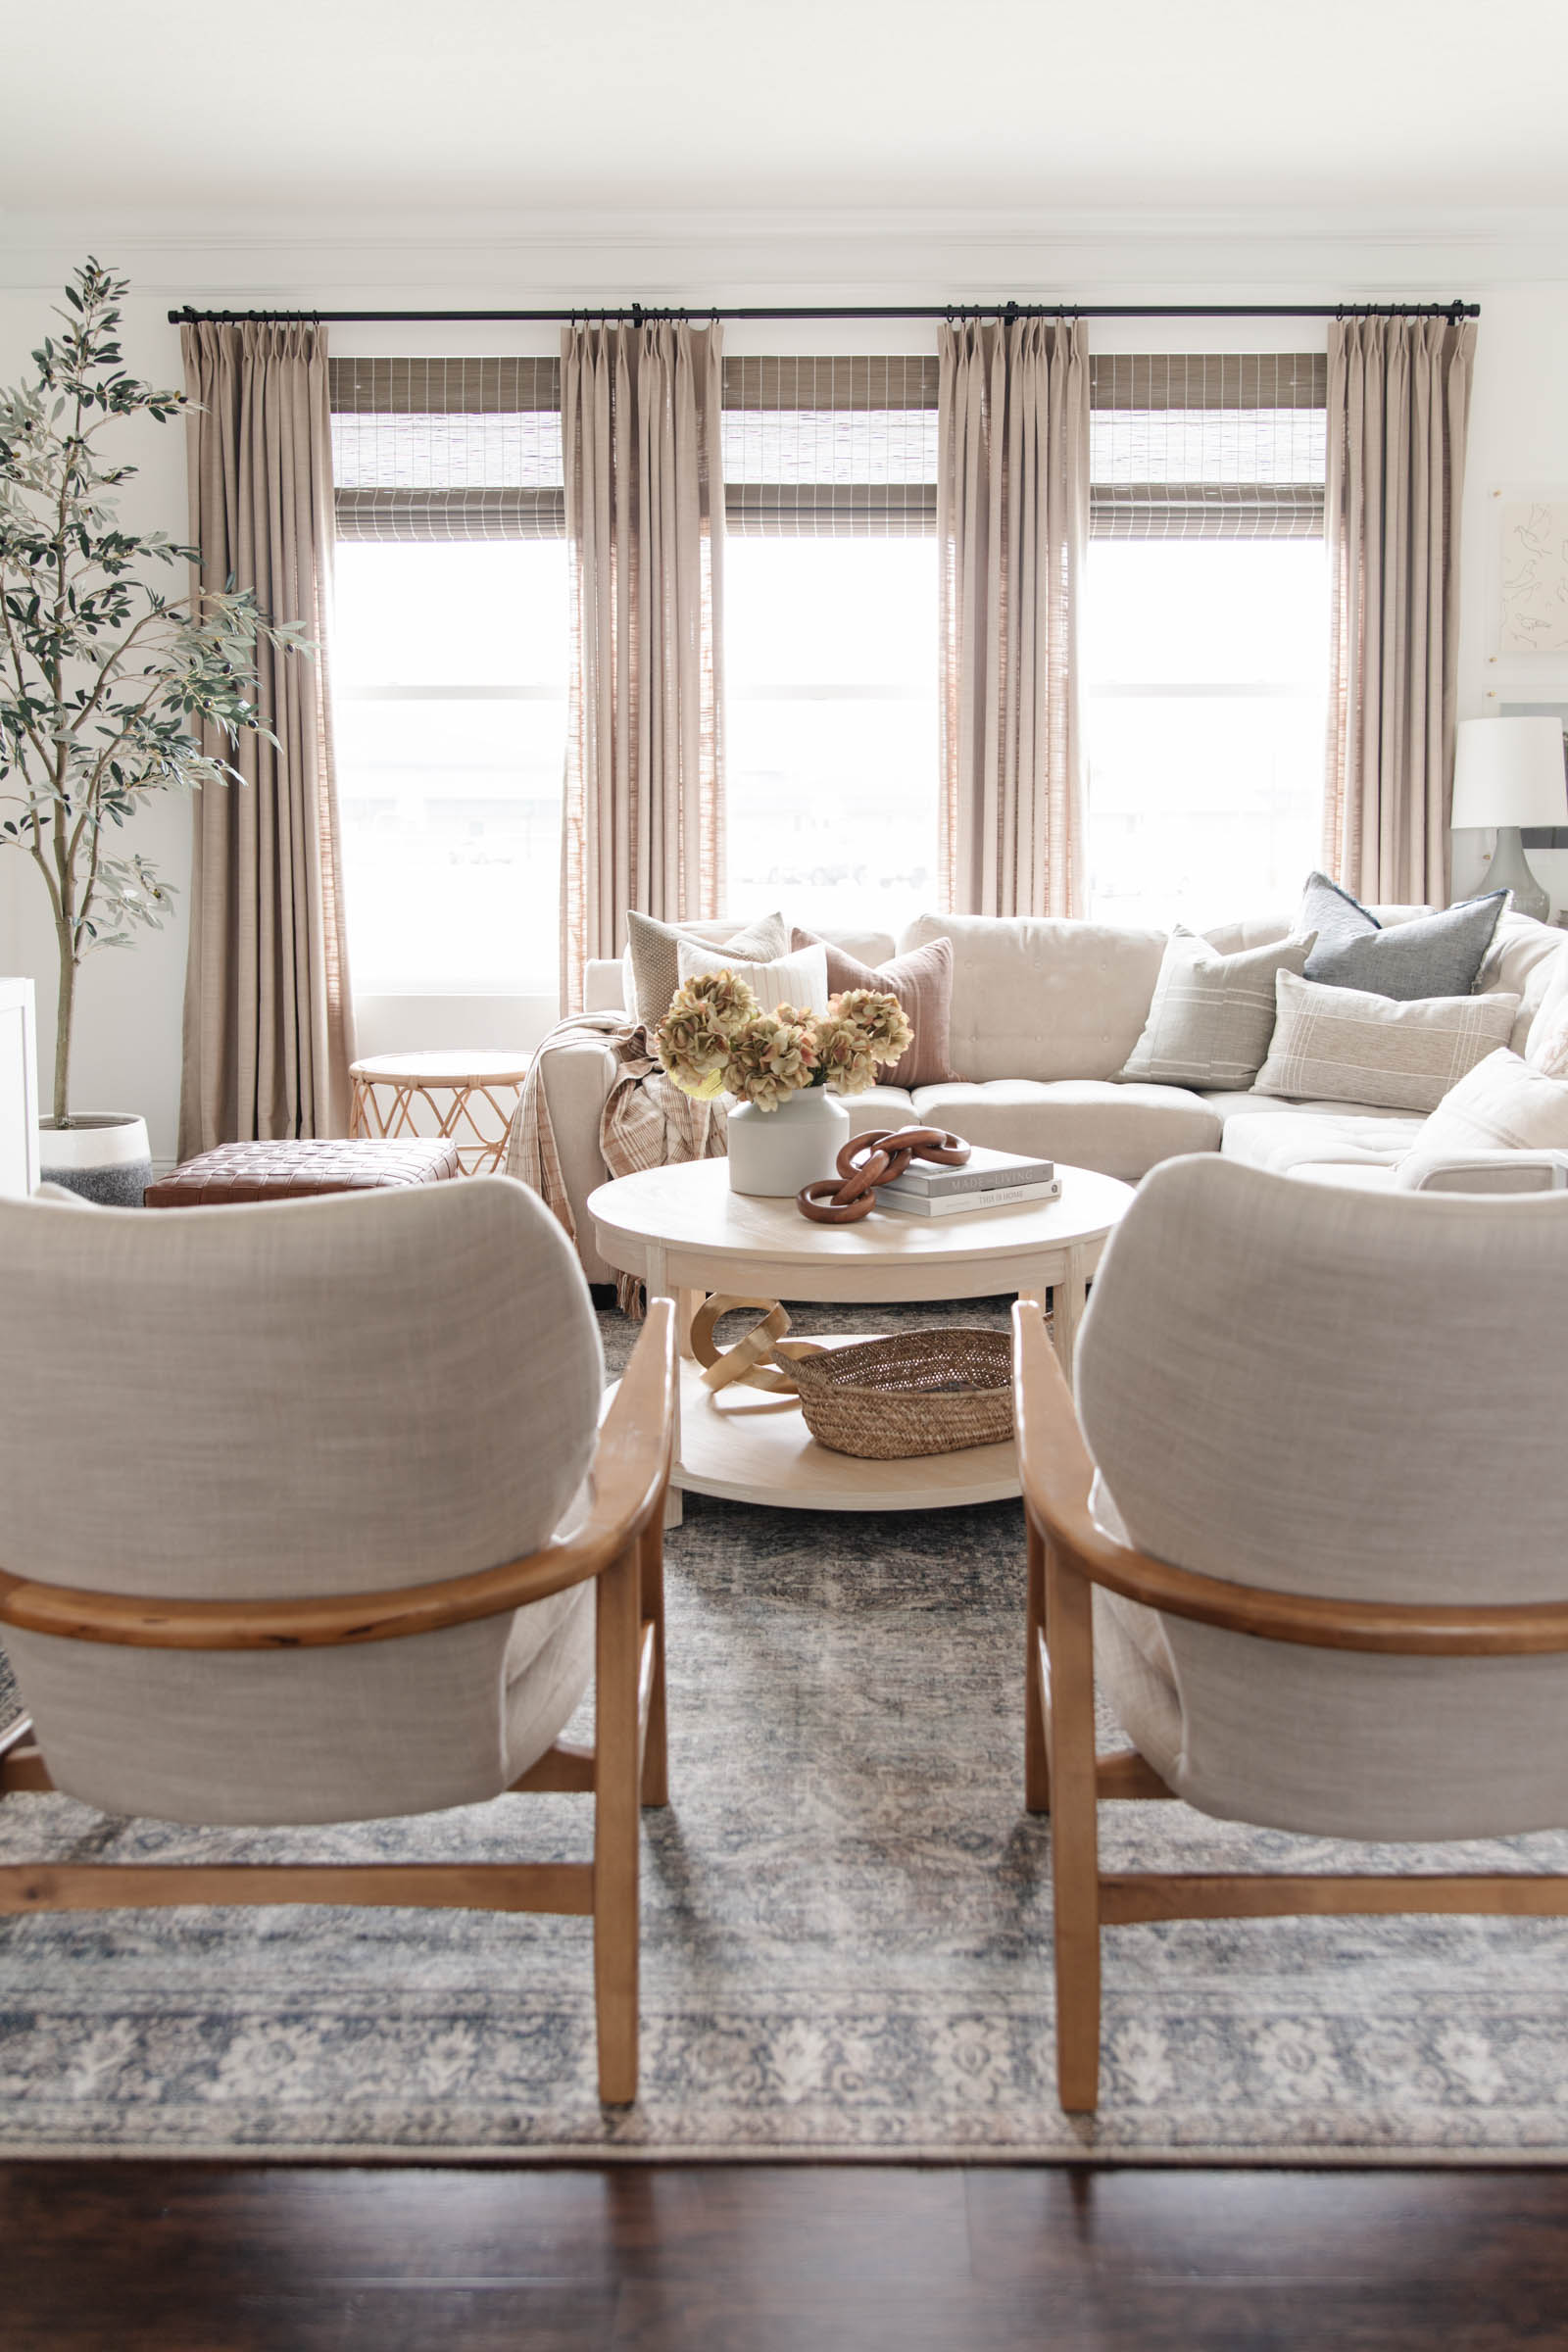 gray beige pinch pleat drapes from Amazon, affordable curtains, Loloi Wynter grey charcoal area rug, round wood coffee table, neutral living room